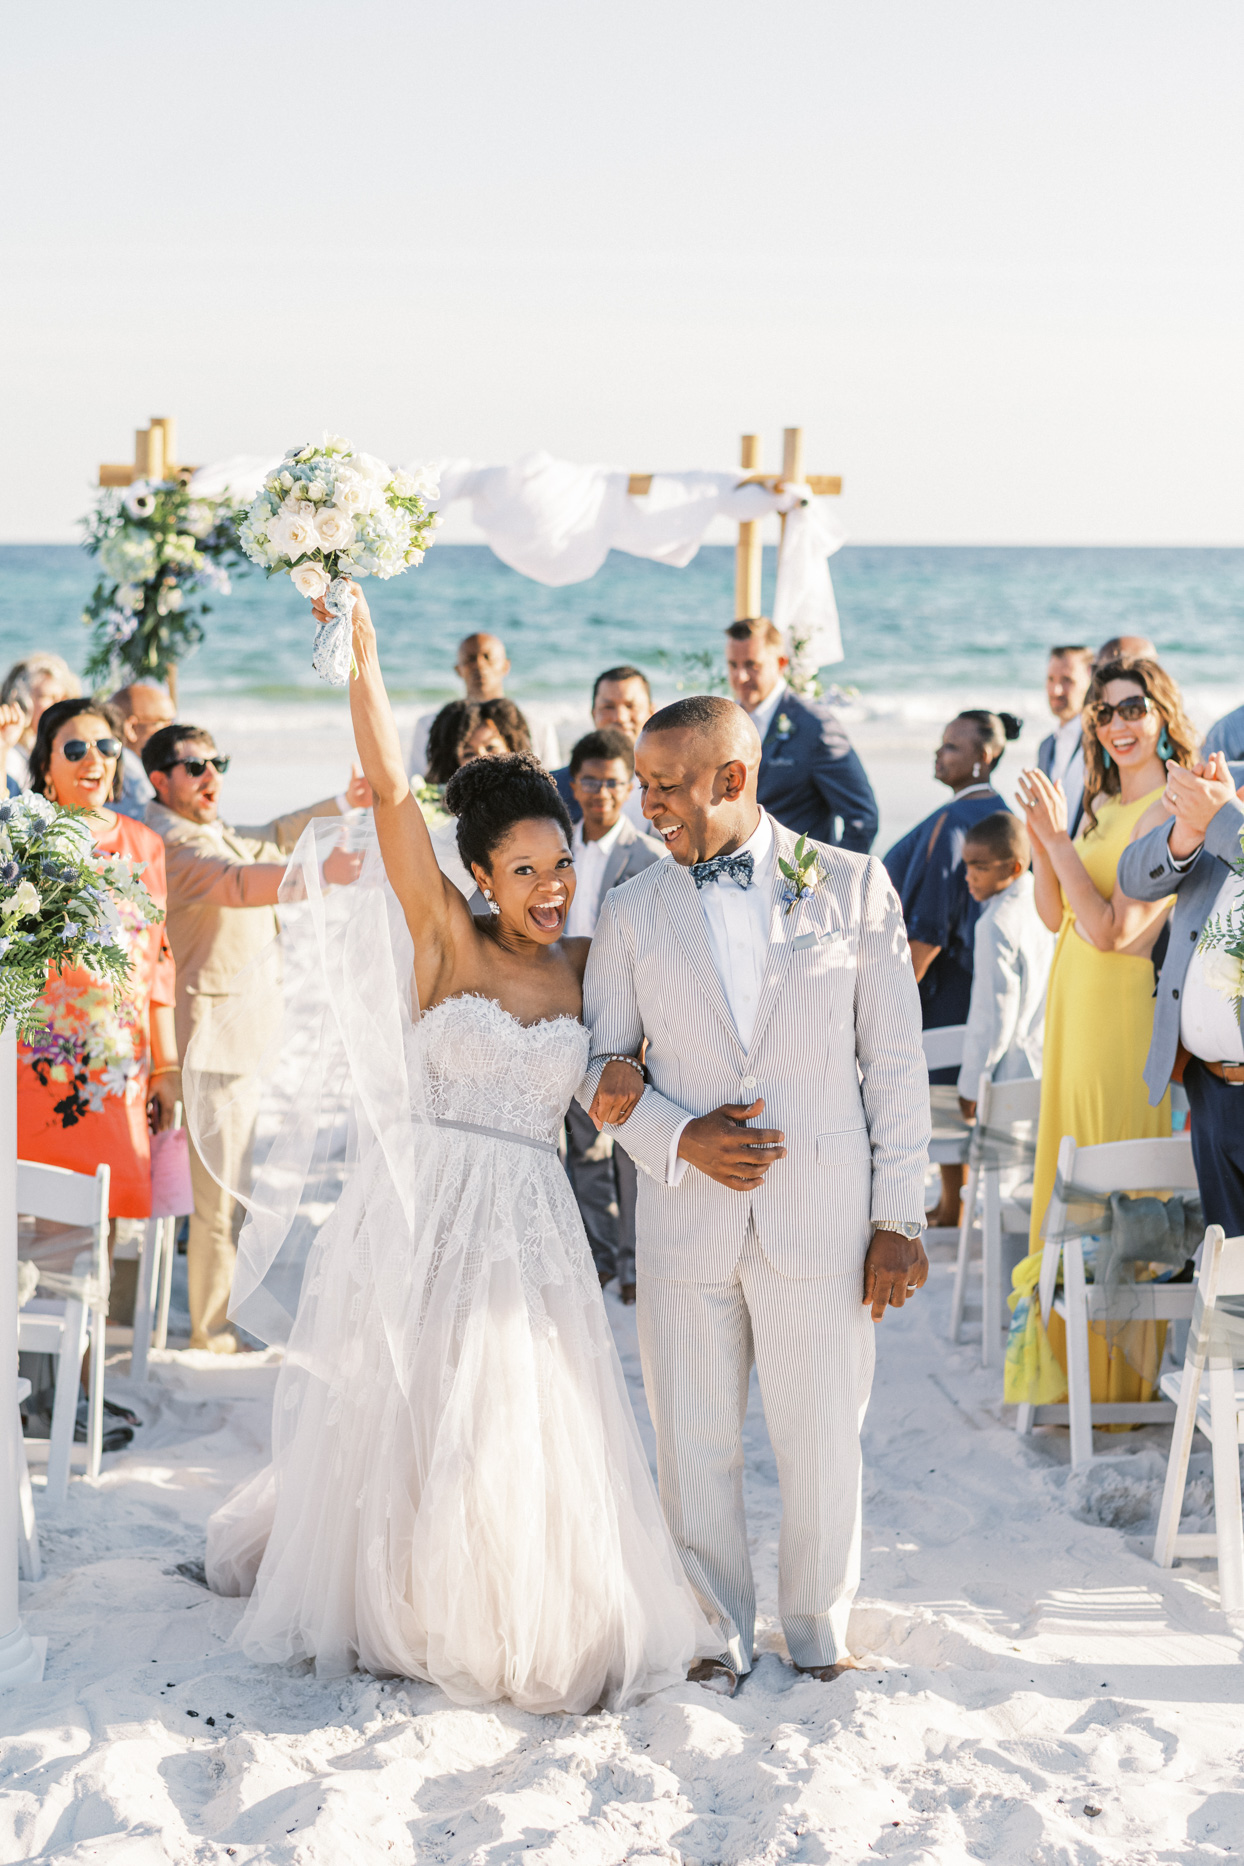 couple celebrating during wedding ceremony recessional on beach